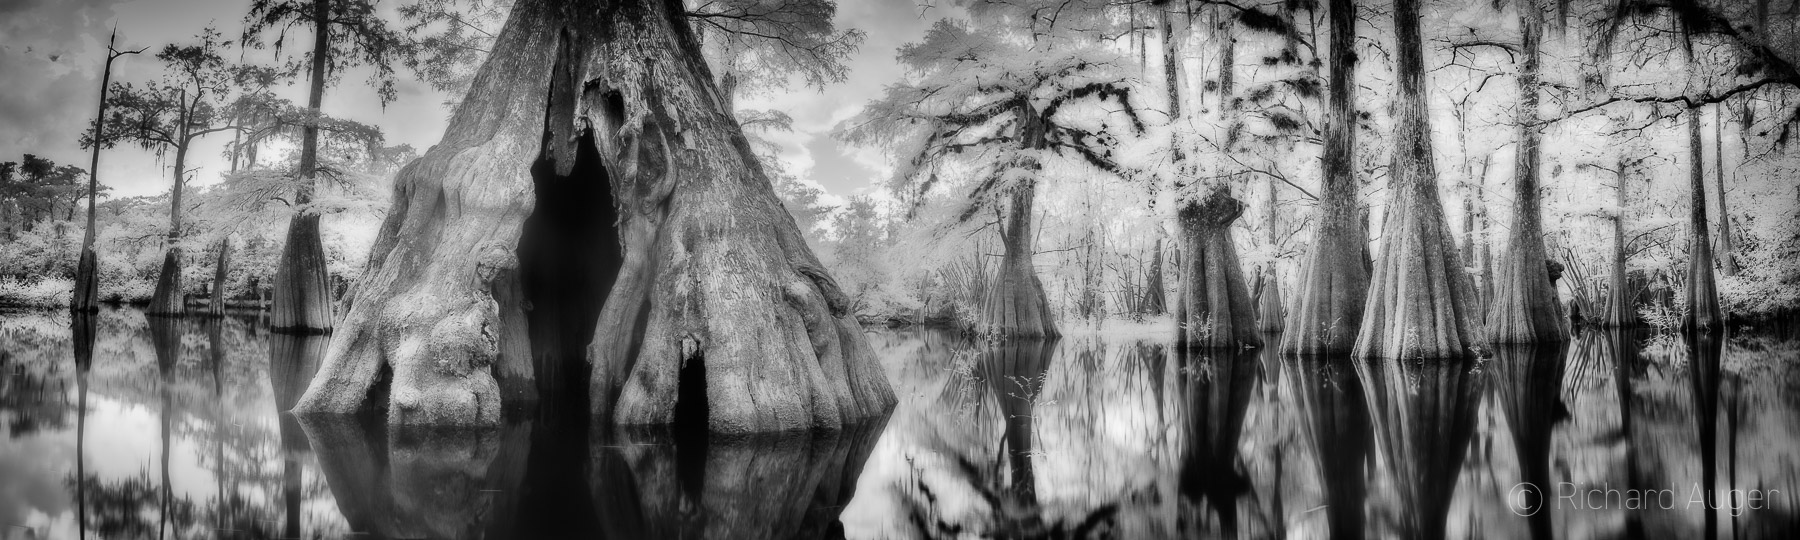 Suwannee River, Florida, Giant Cypress Trees, Water, Swamp, Sepia, Monochrome, Richard Auger